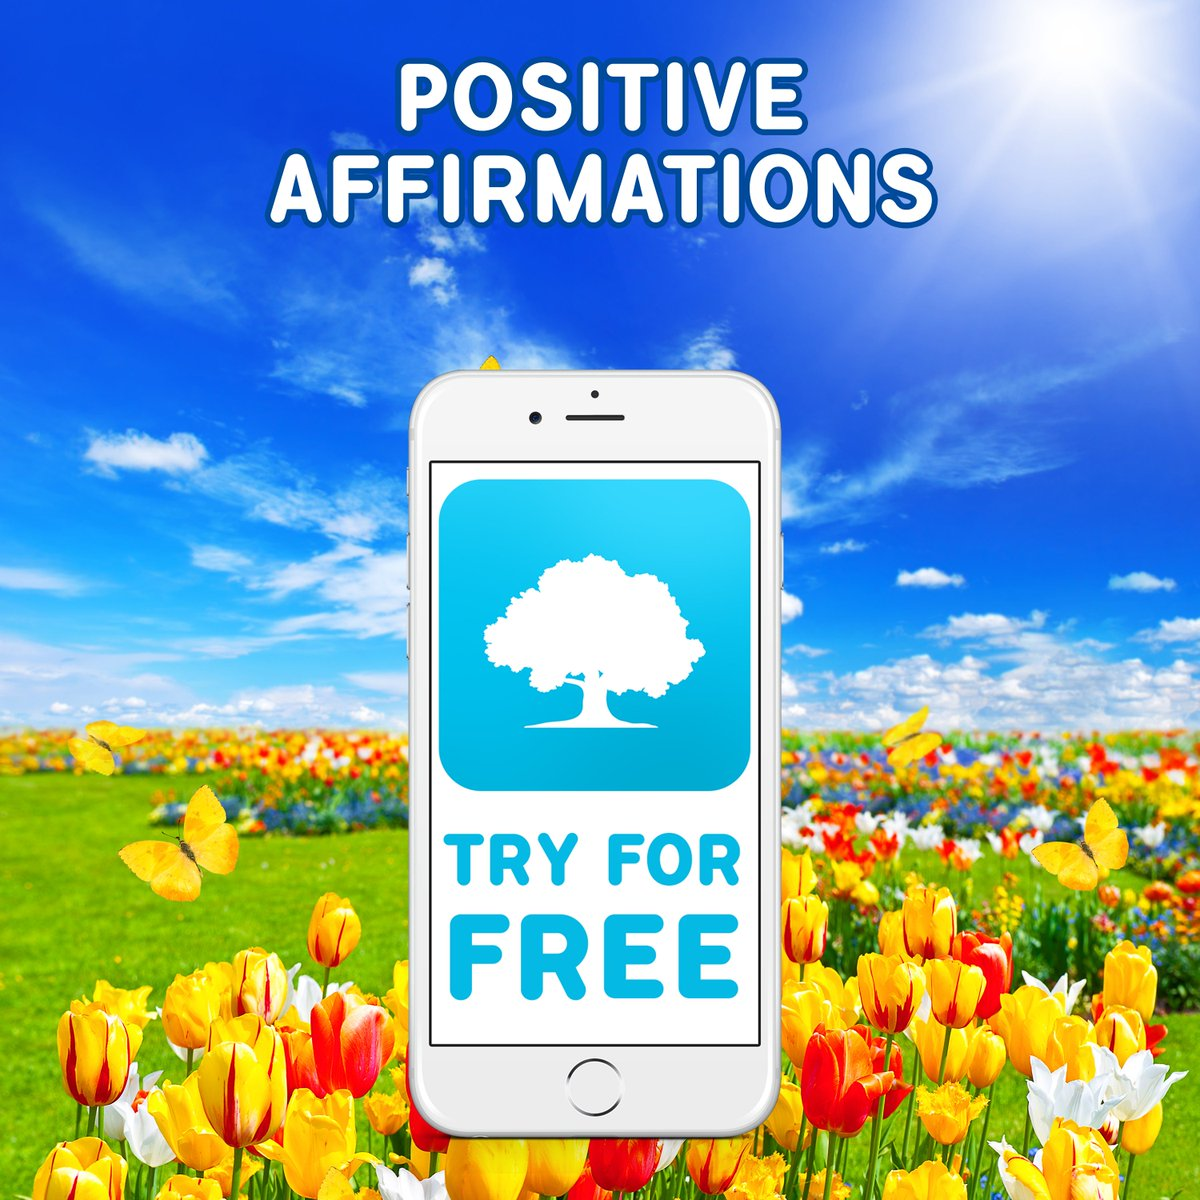 Take Control of Your Thoughts! #Positive  #Affirmations  #App  Buy it now:  https://itunes.apple.com/app/id1309109294  …